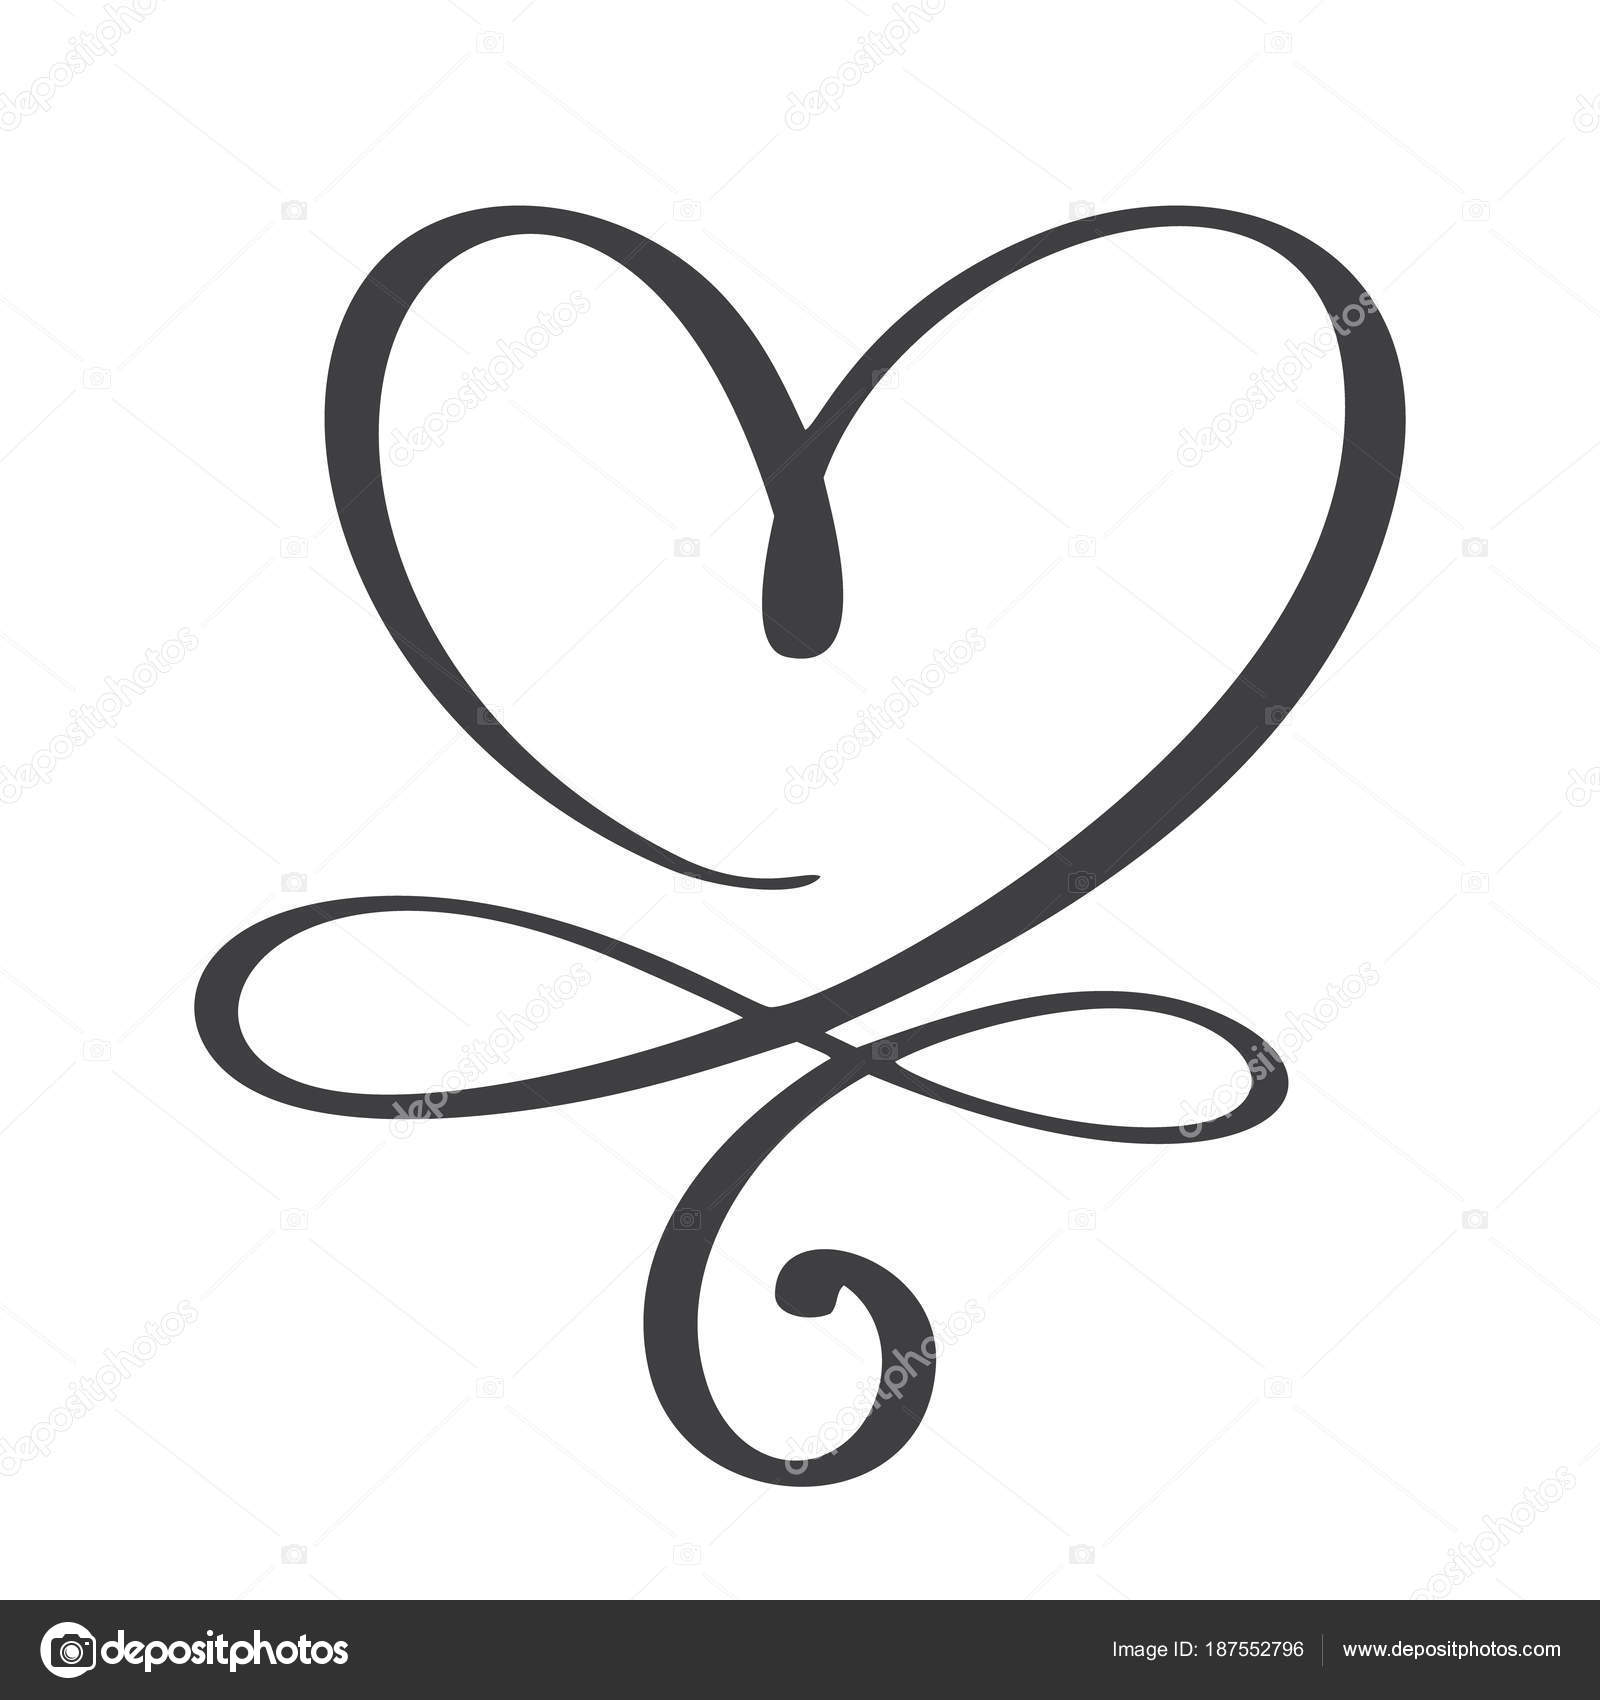 love wallpaper image collection galaxy images wallpapers infinity pink sign symbol